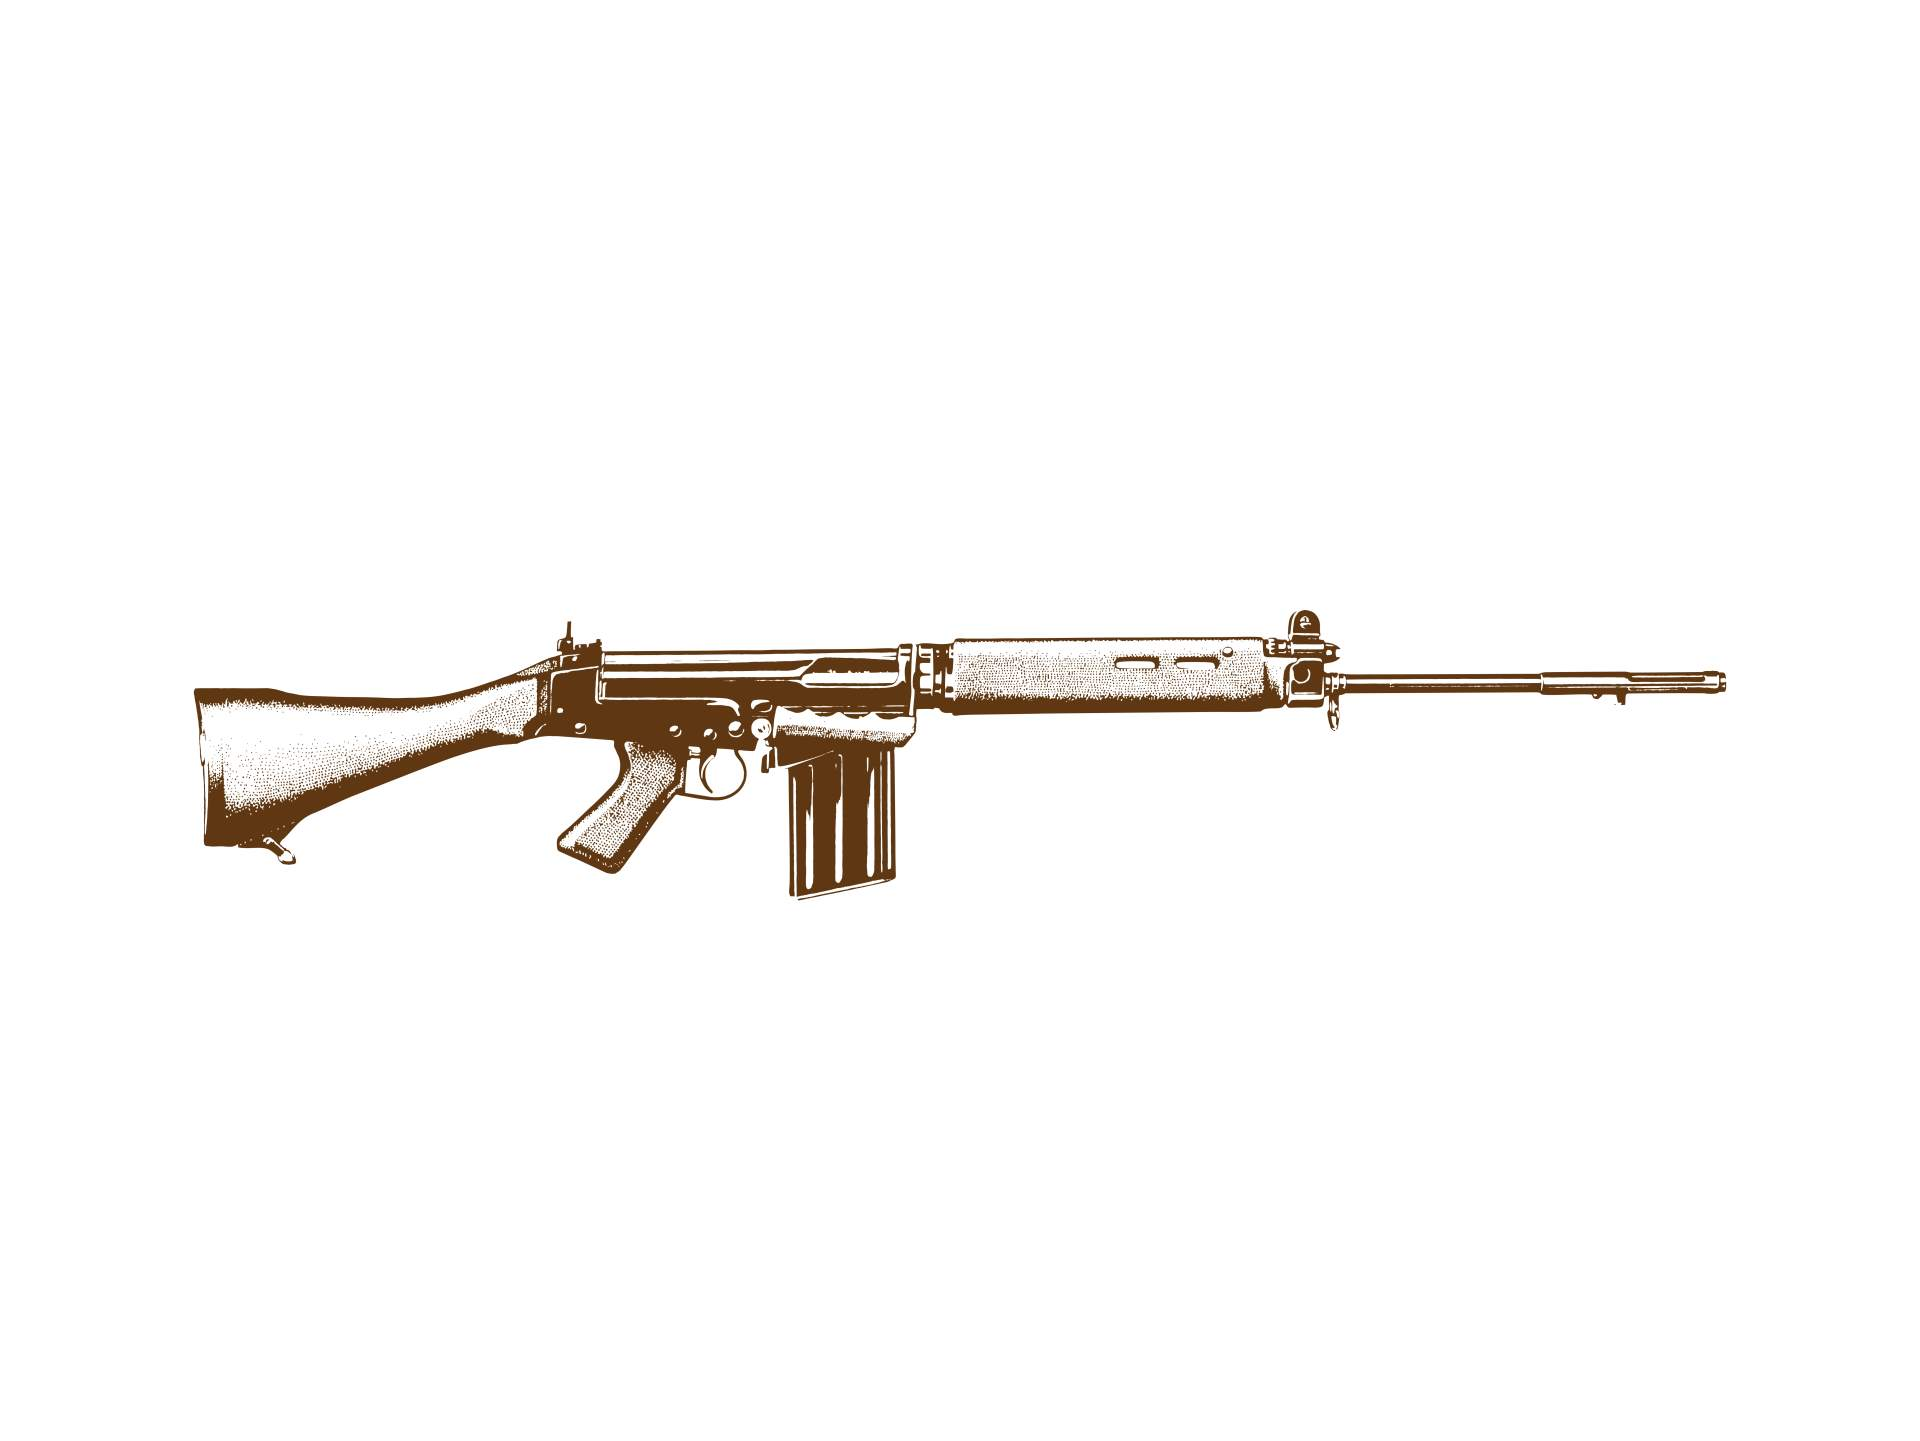 Stephen Symons, Fusil Automatique Léger or The Right Arm of the Free World, 2017, Digital print, 59.8 cm × 79.7 cm (23 ½ in. × 31 in.)